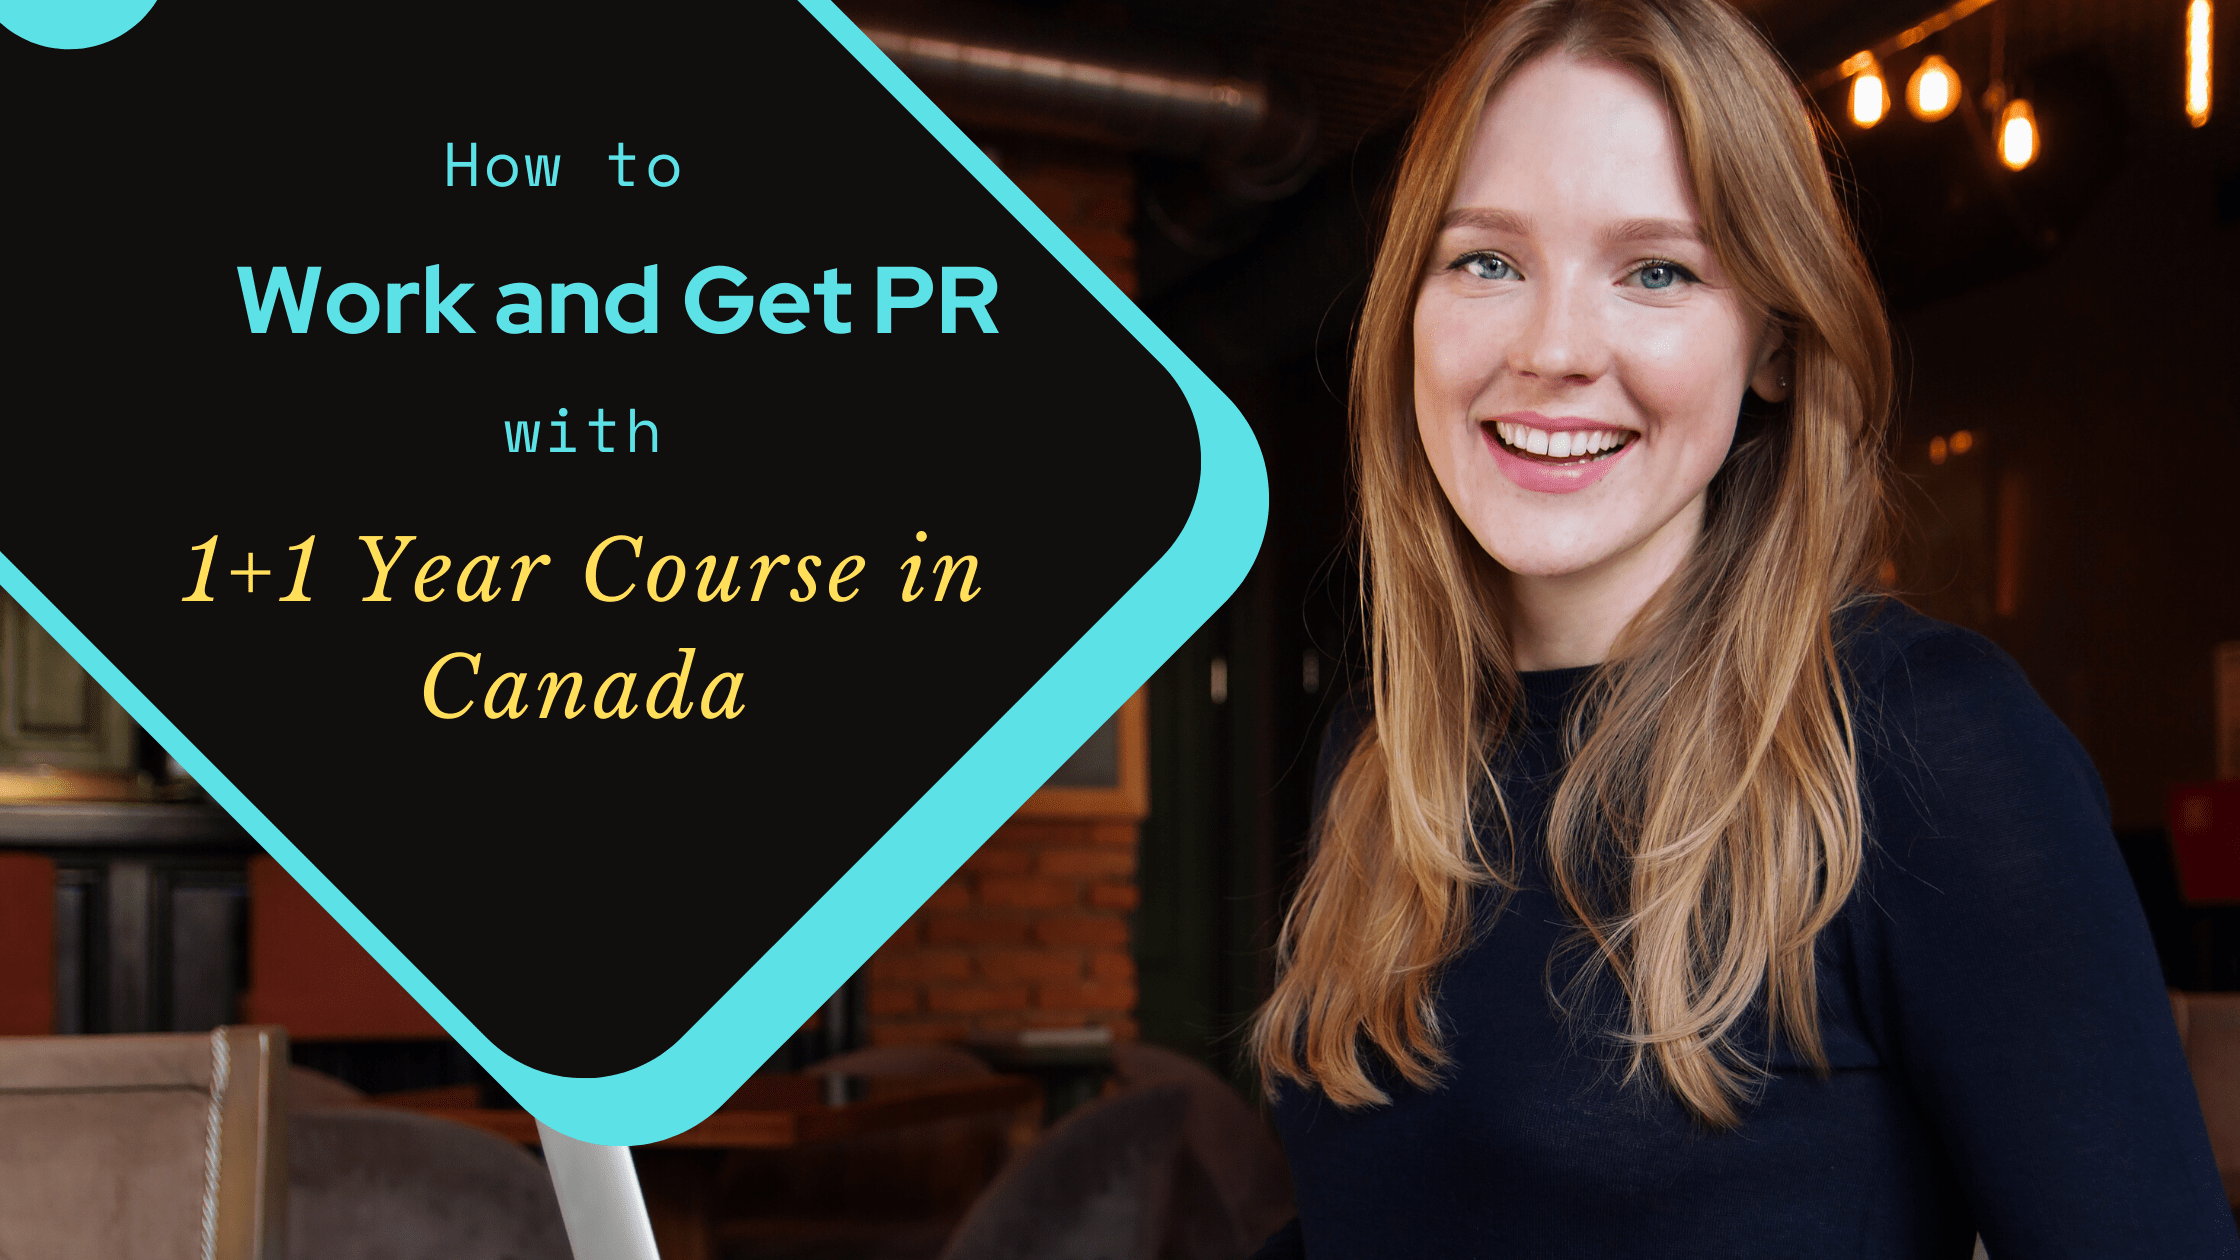 How to Work and Get PR with 1+1 Year Course in Canada